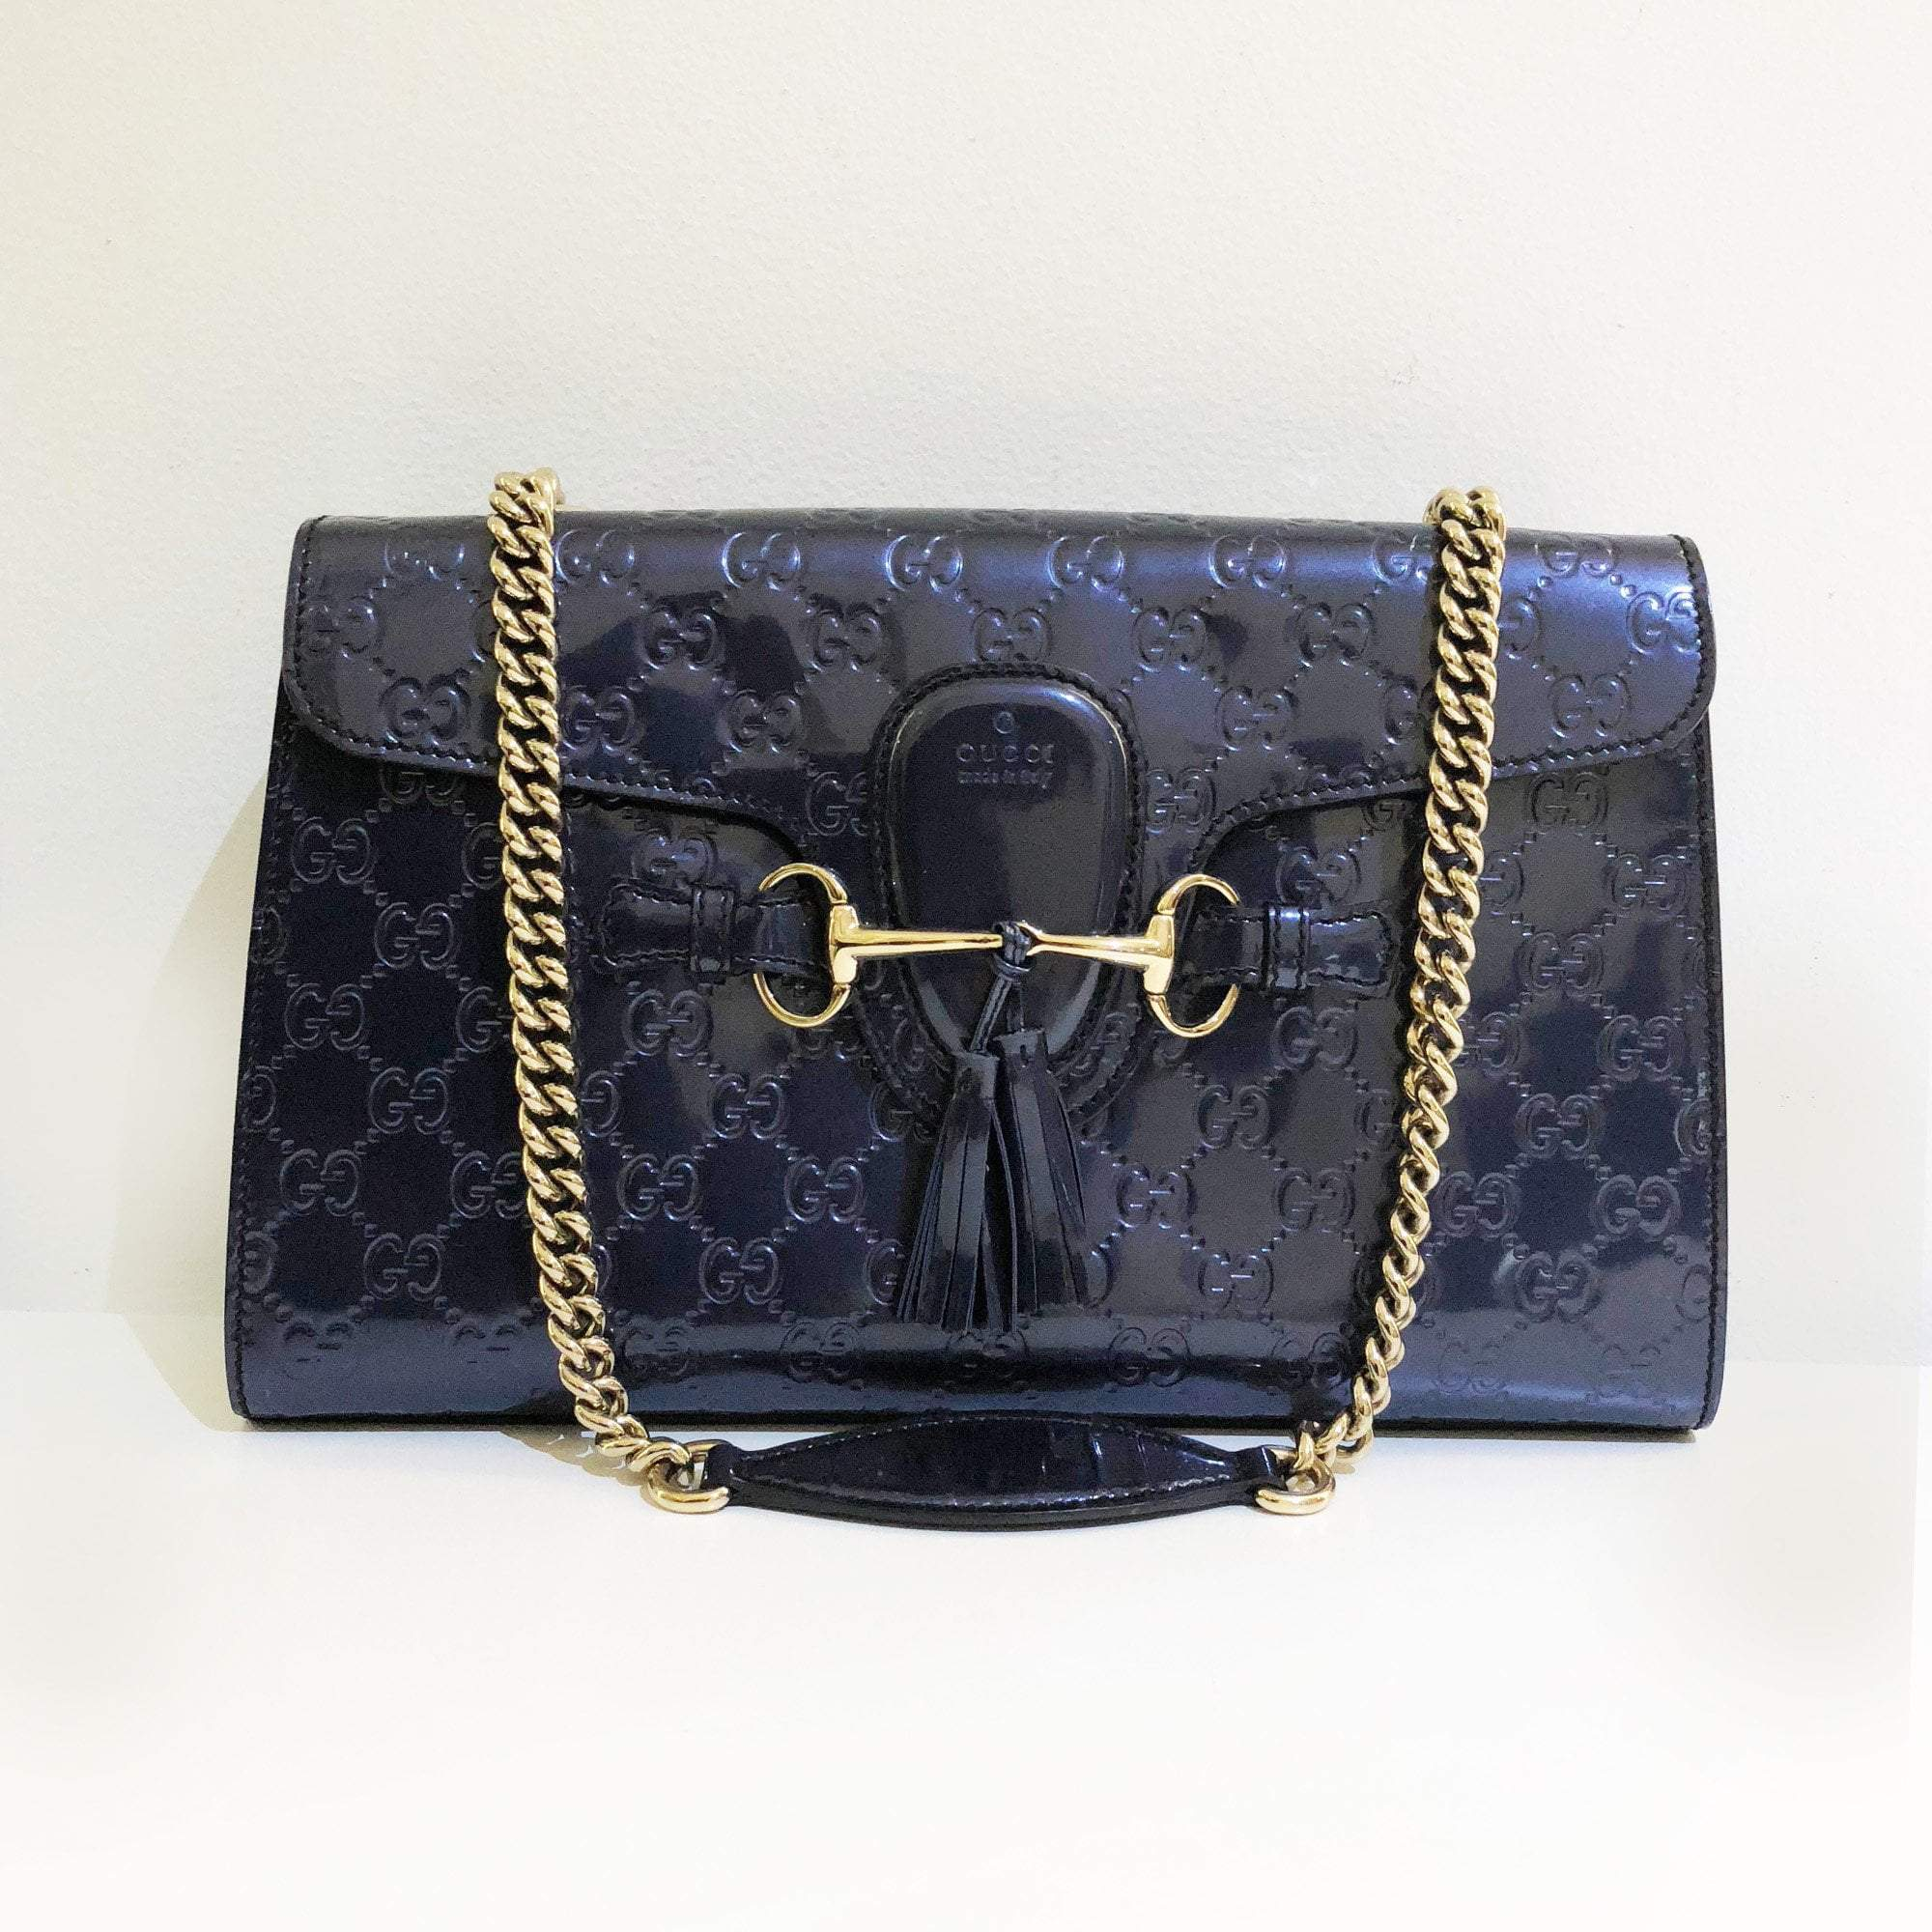 d3a53a49ea3e0f Gucci Emily Medium Guccissima Leather Chain Shoulder Bag – Garderobe